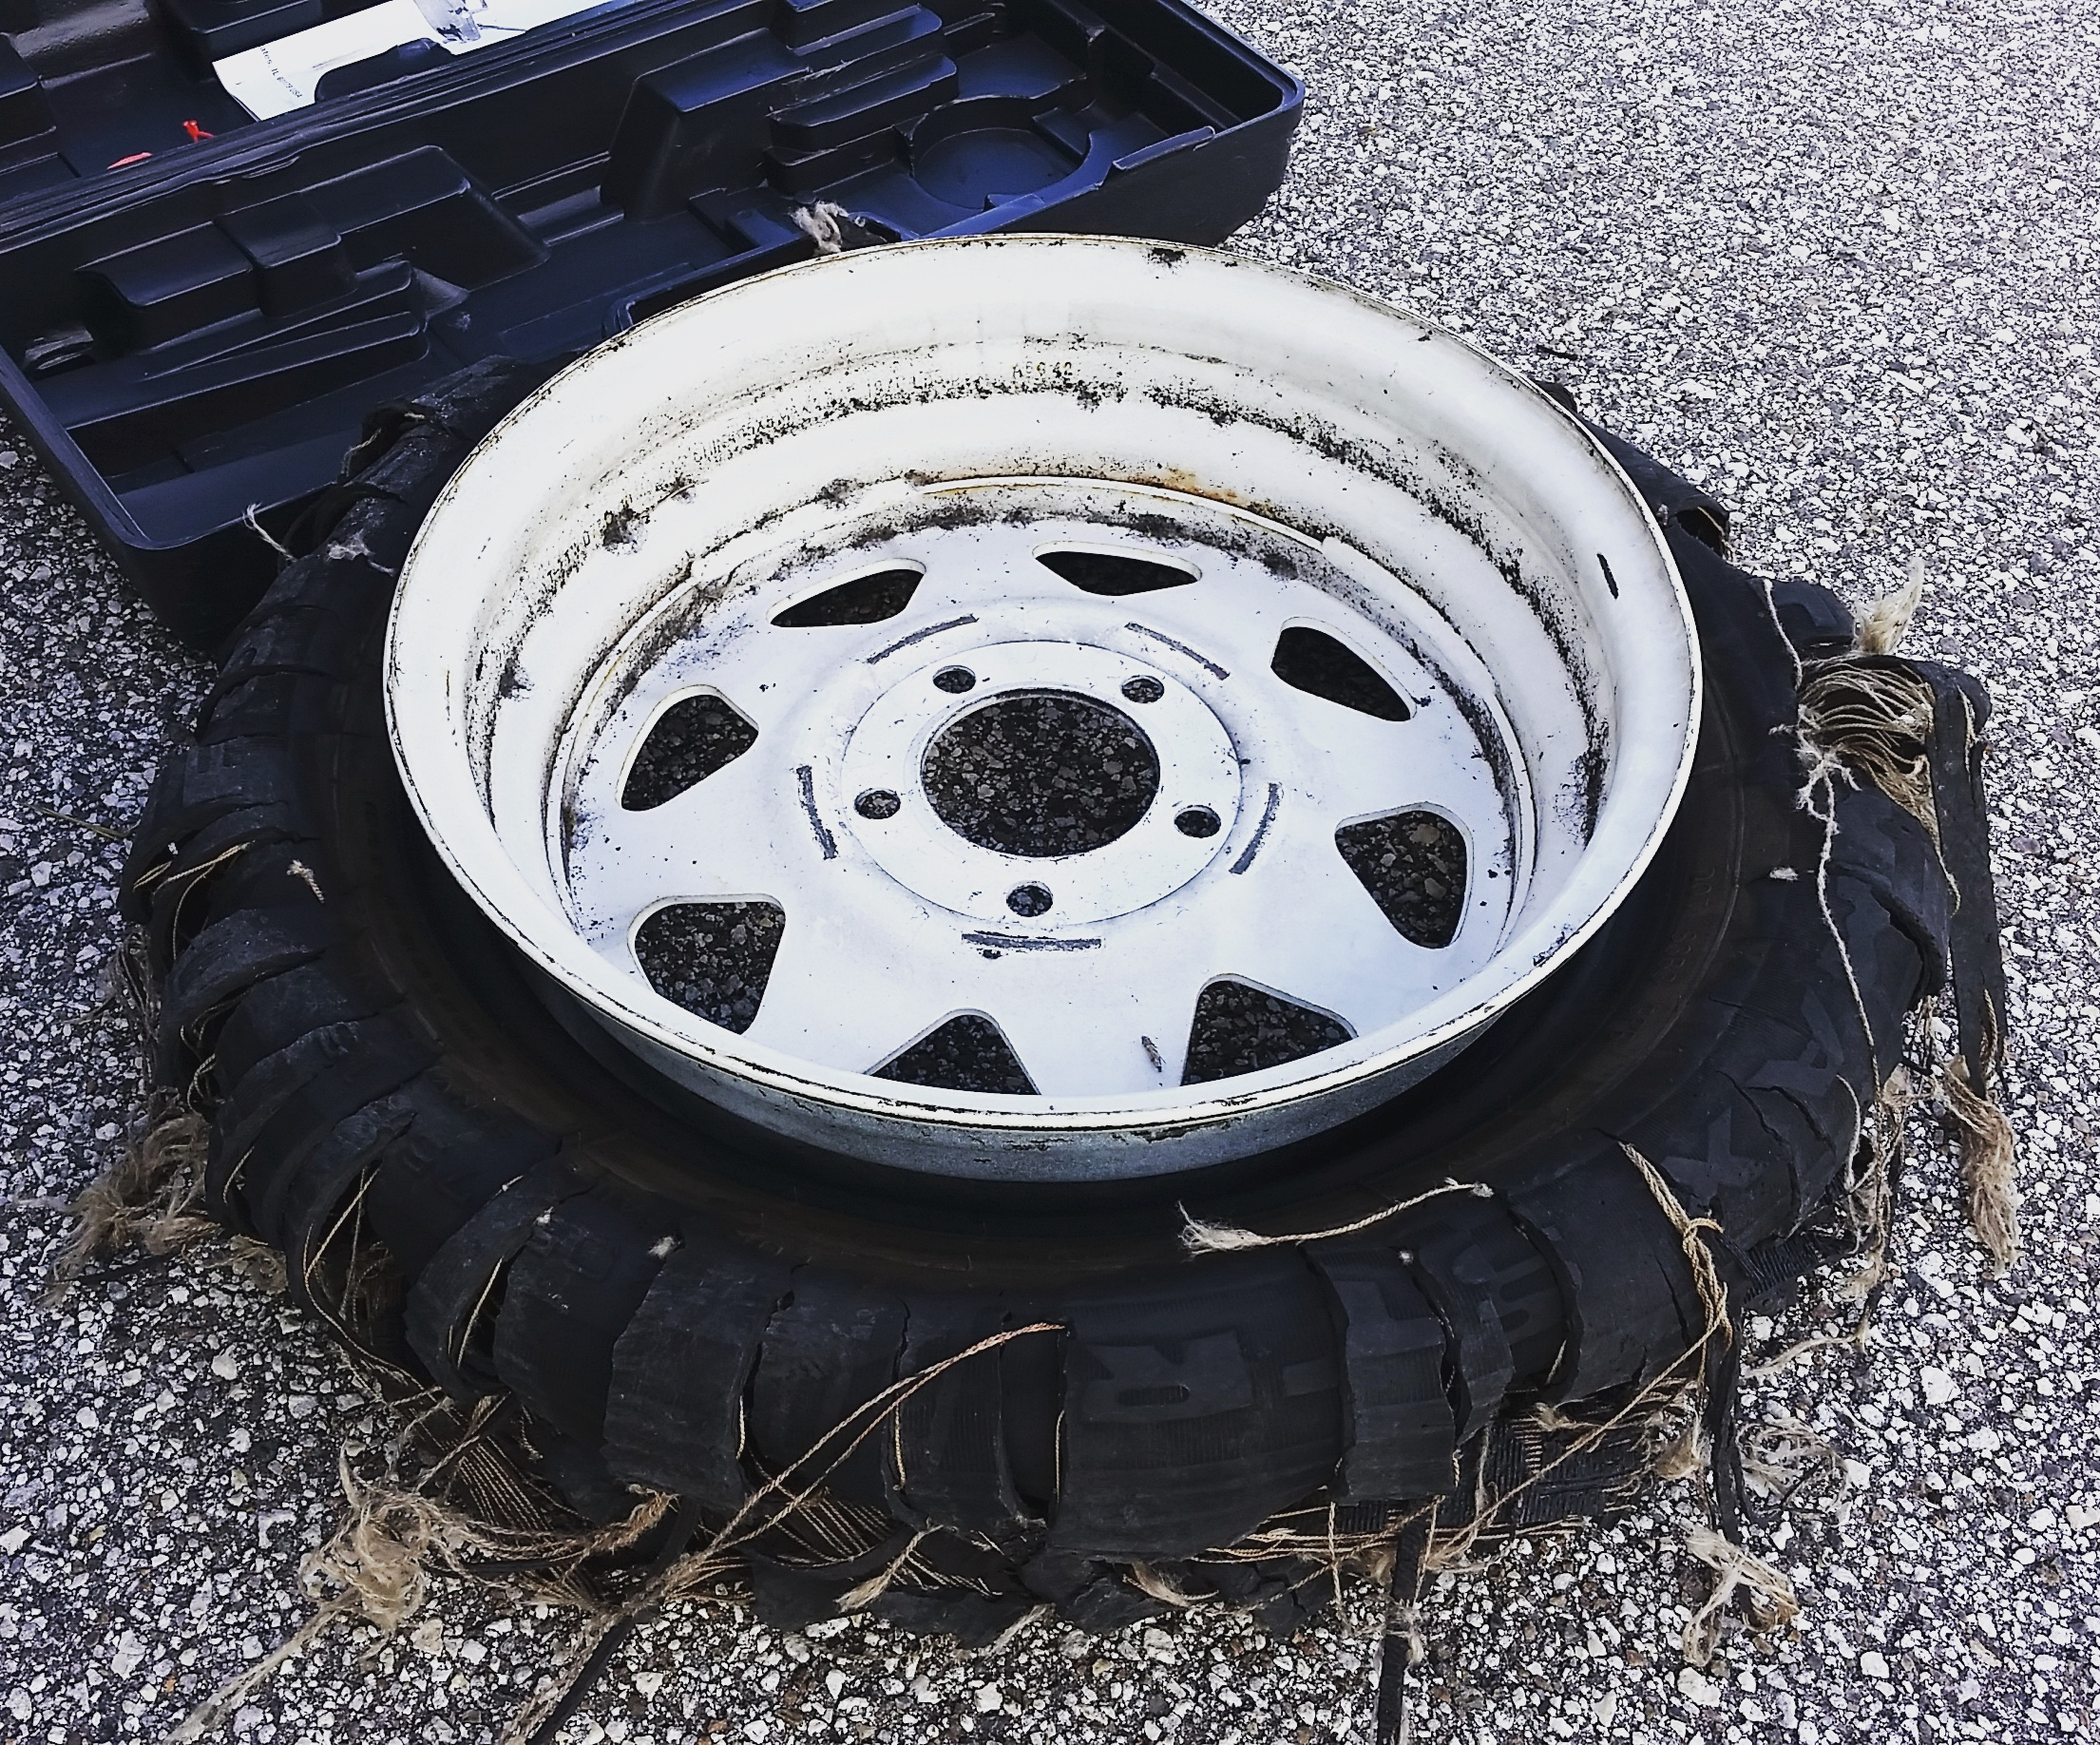 The blown tire, in all its shredded and mangled glory...